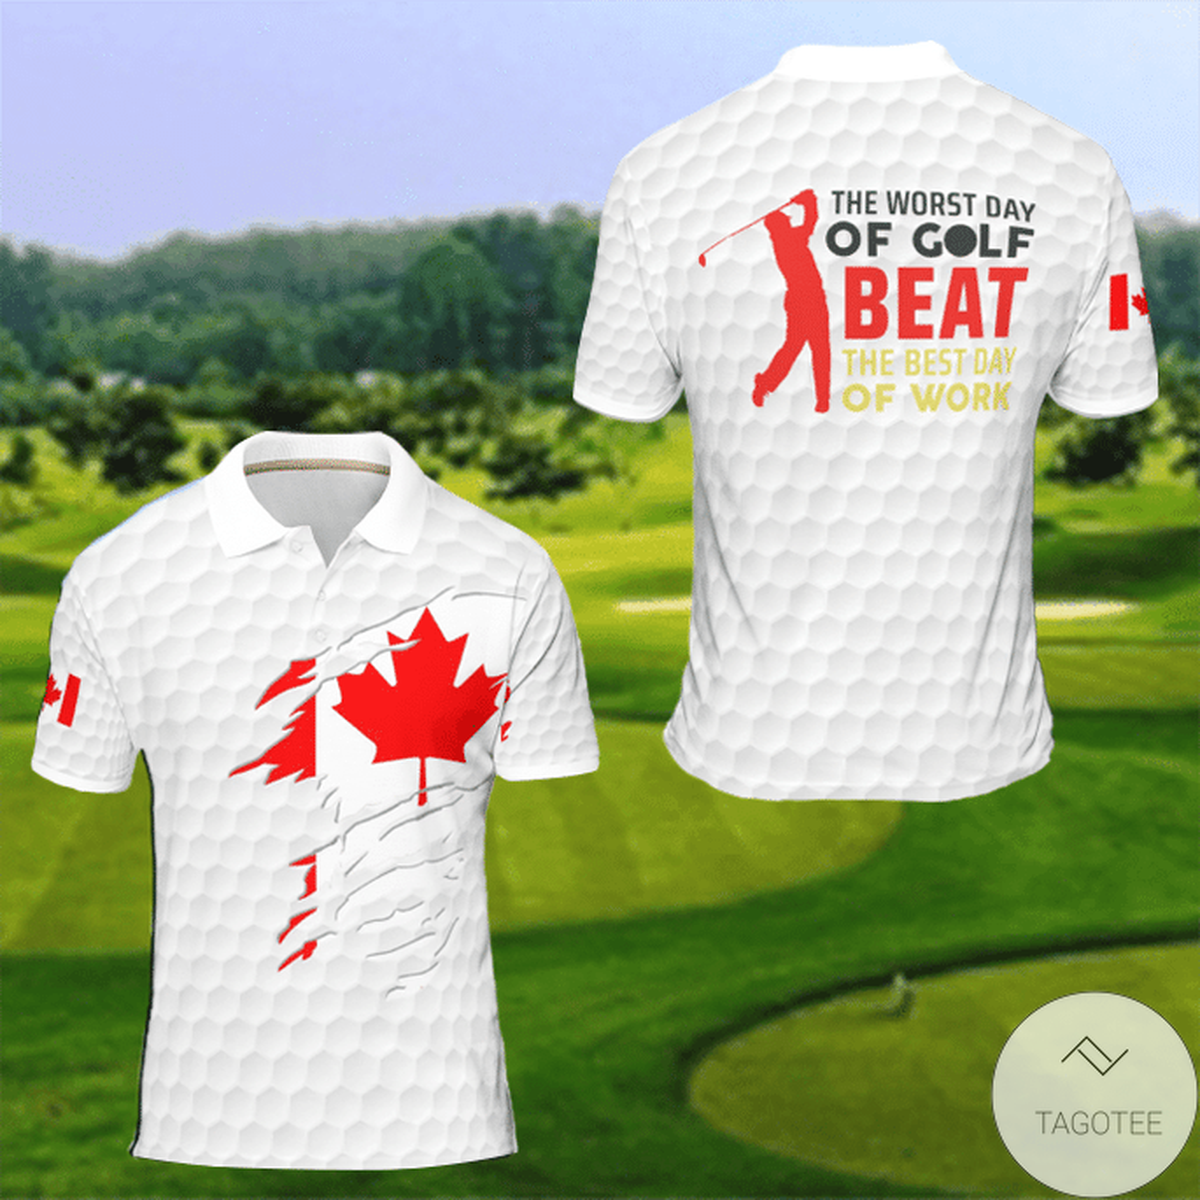 The Worst Day Of Golf Beat The Best Day Of Work Canda Flag Polo Shirt